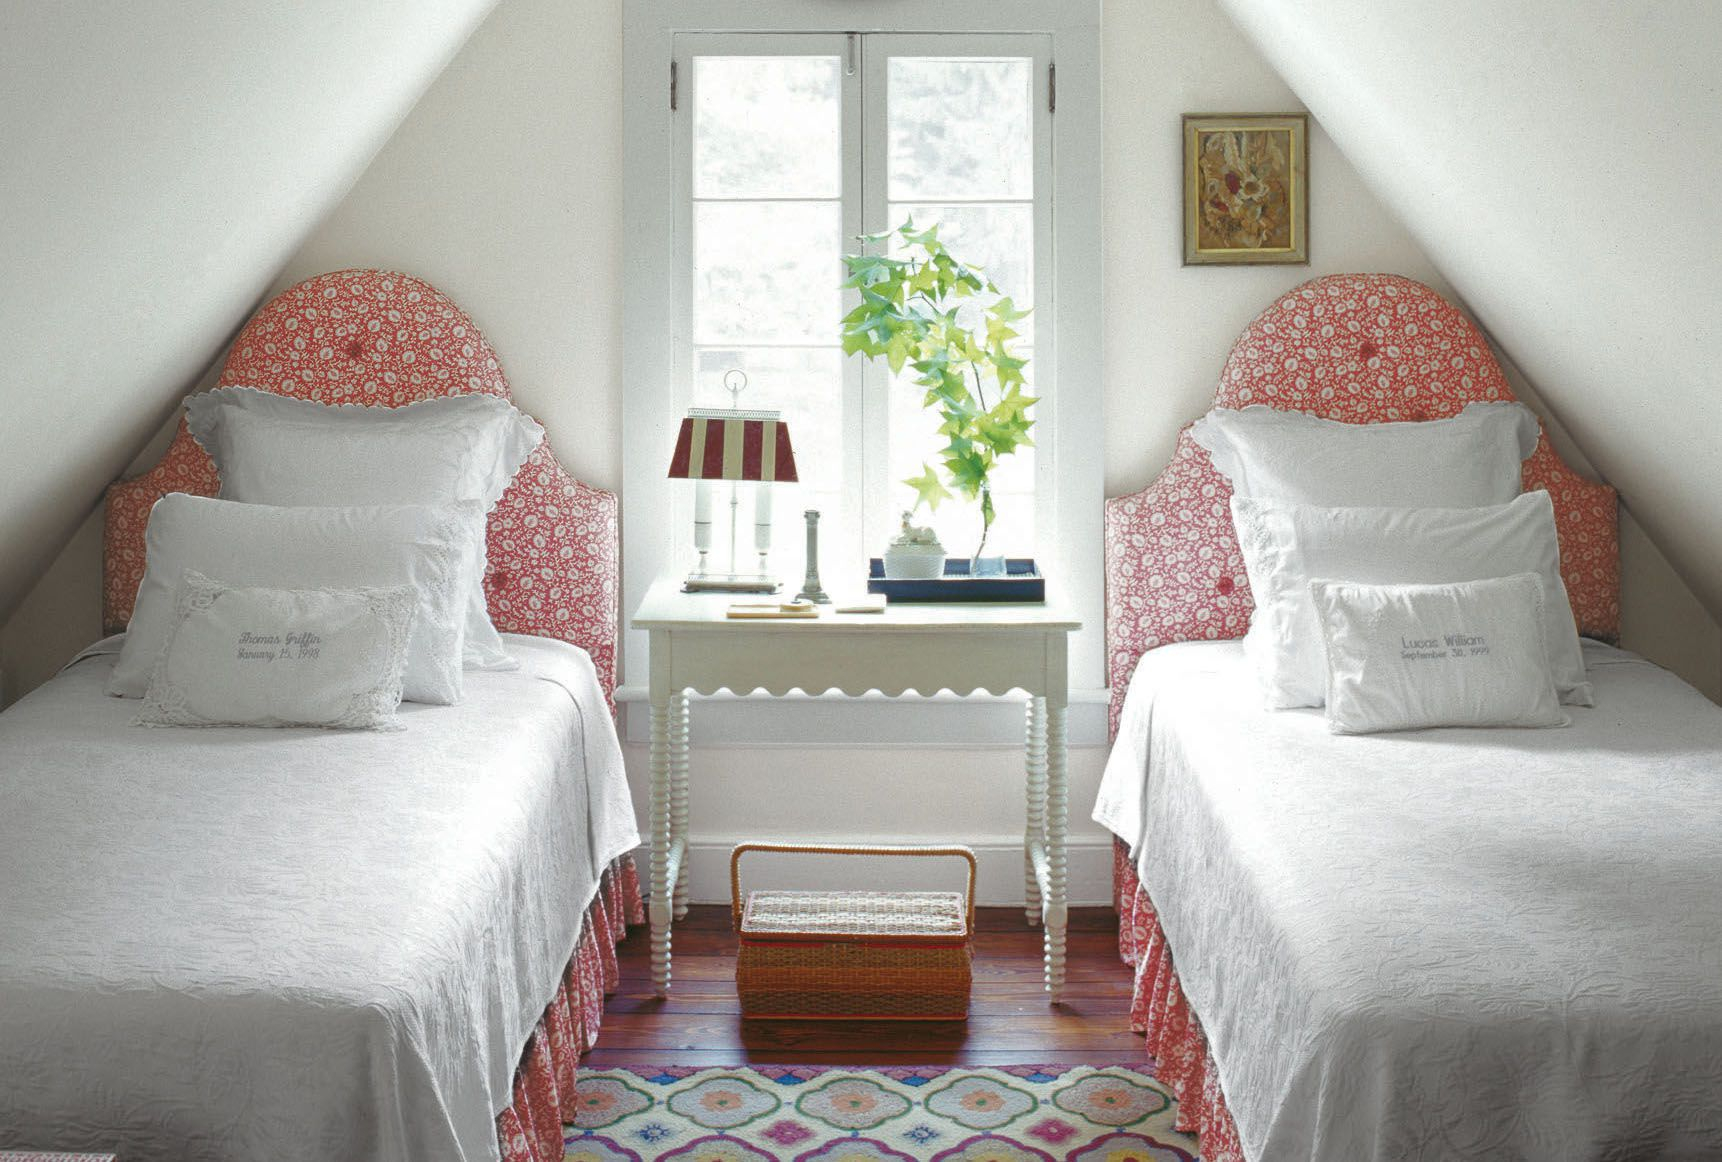 Inspirational Beautiful Small Bedrooms | Interior with regard to Lovely Beautiful Small Bedrooms